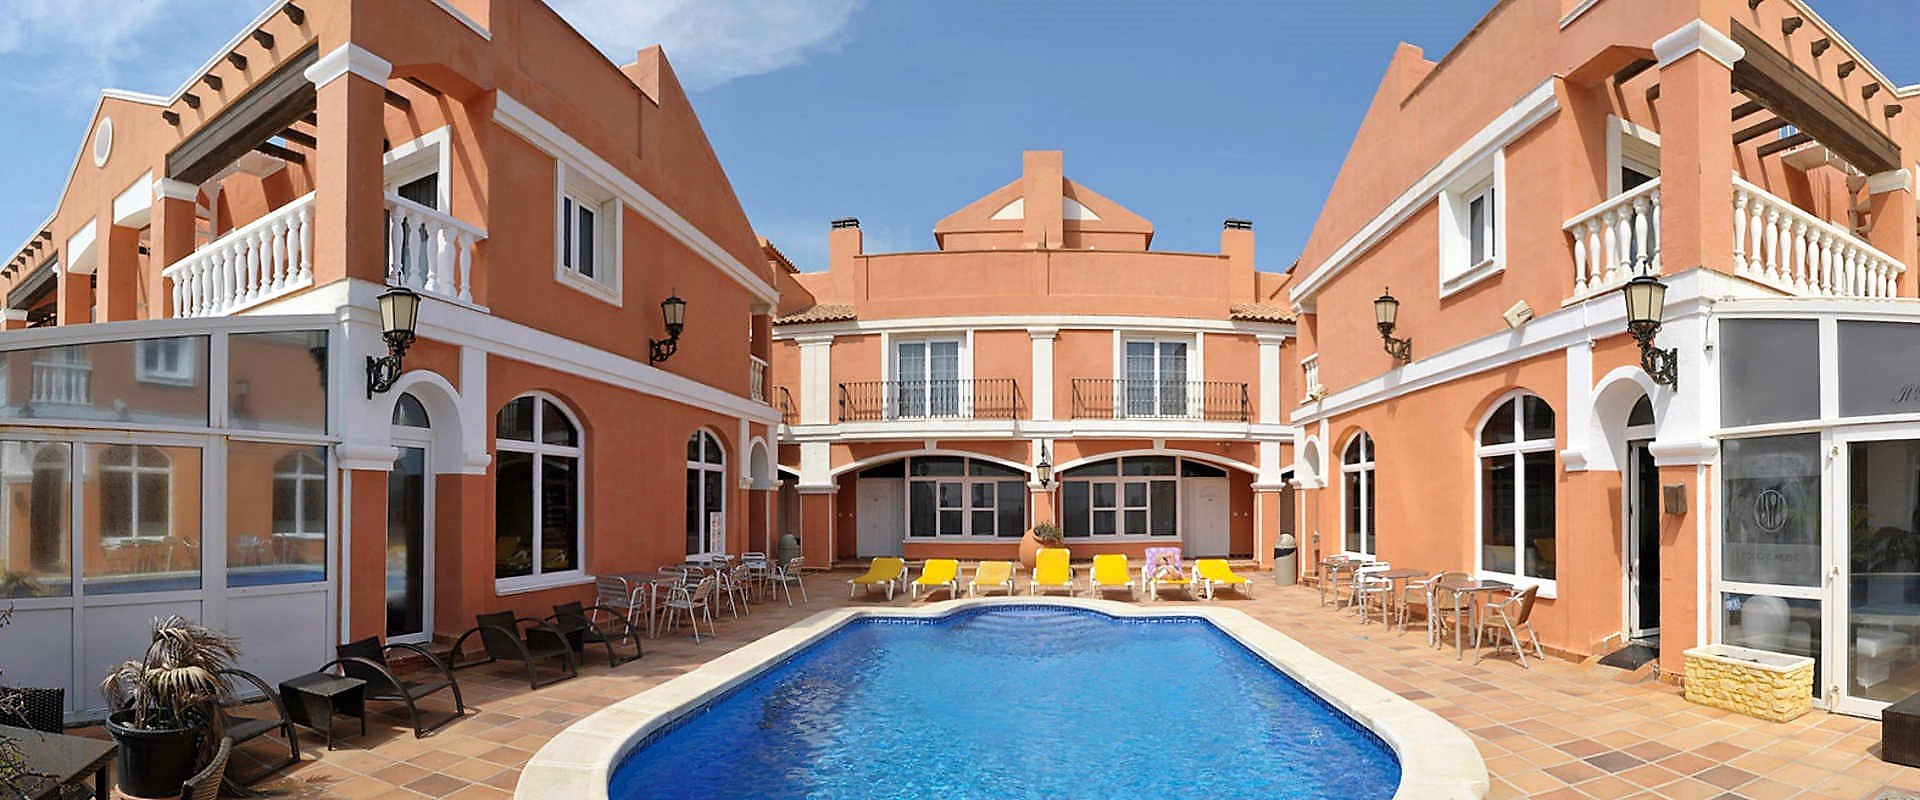 Explore a Aparthotel full of surprises Lloyds Beach Club Aparthotel Torrevieja, Alicante